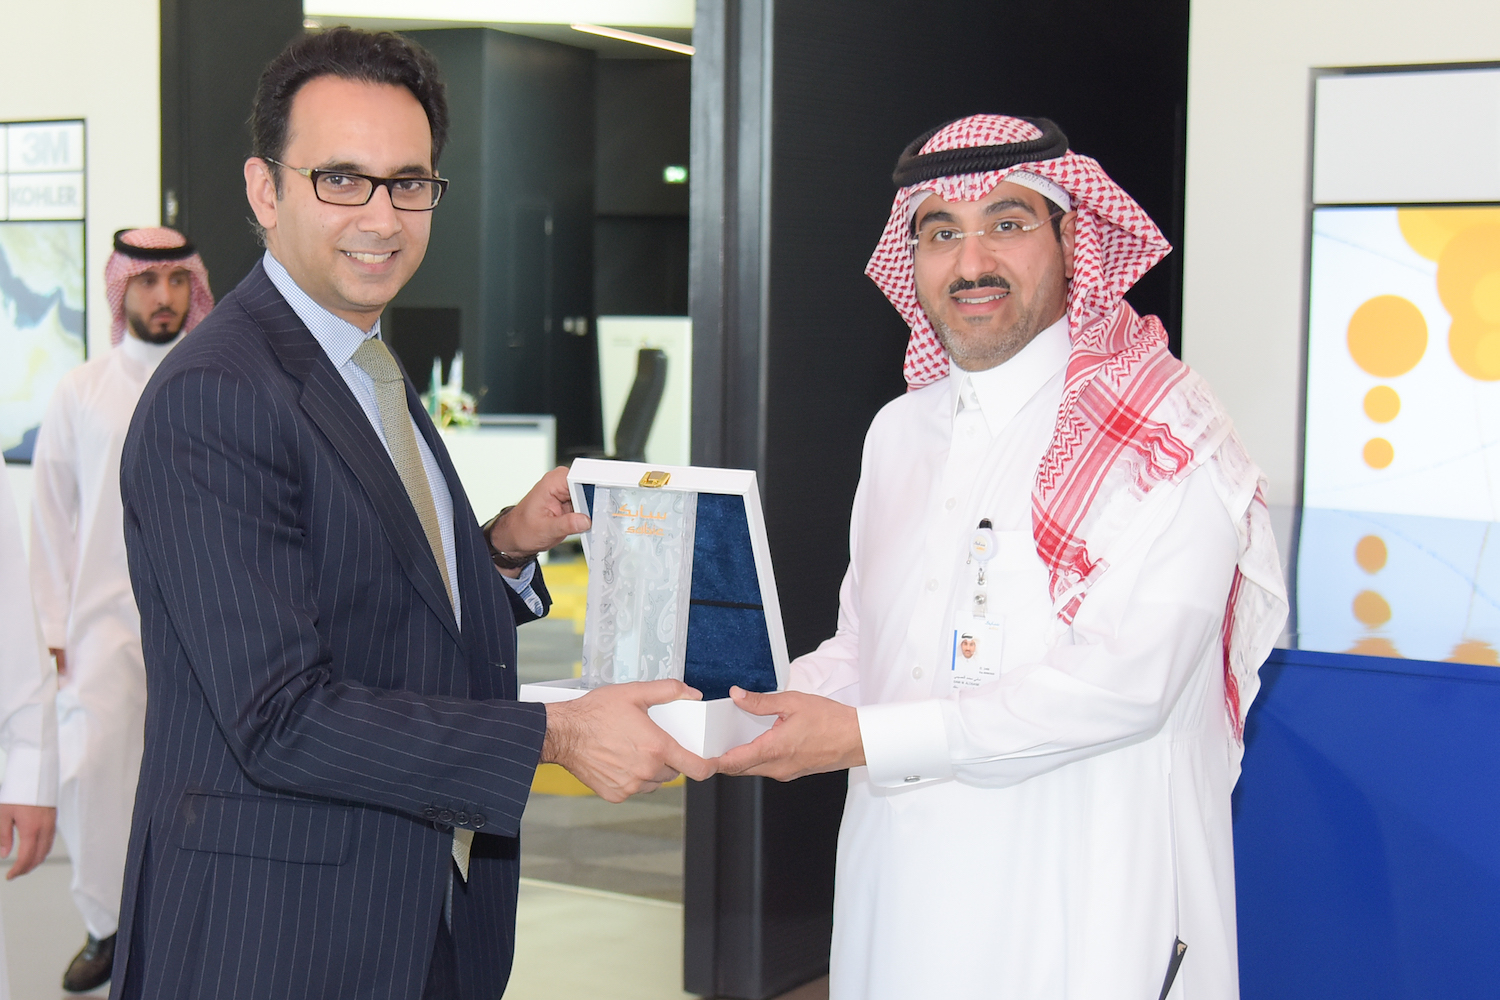 JA Worldwide CEO, Asheesh Advani, (left) and Khaled Habardy, SABIC General Manager for Public Affairs and Government Relations